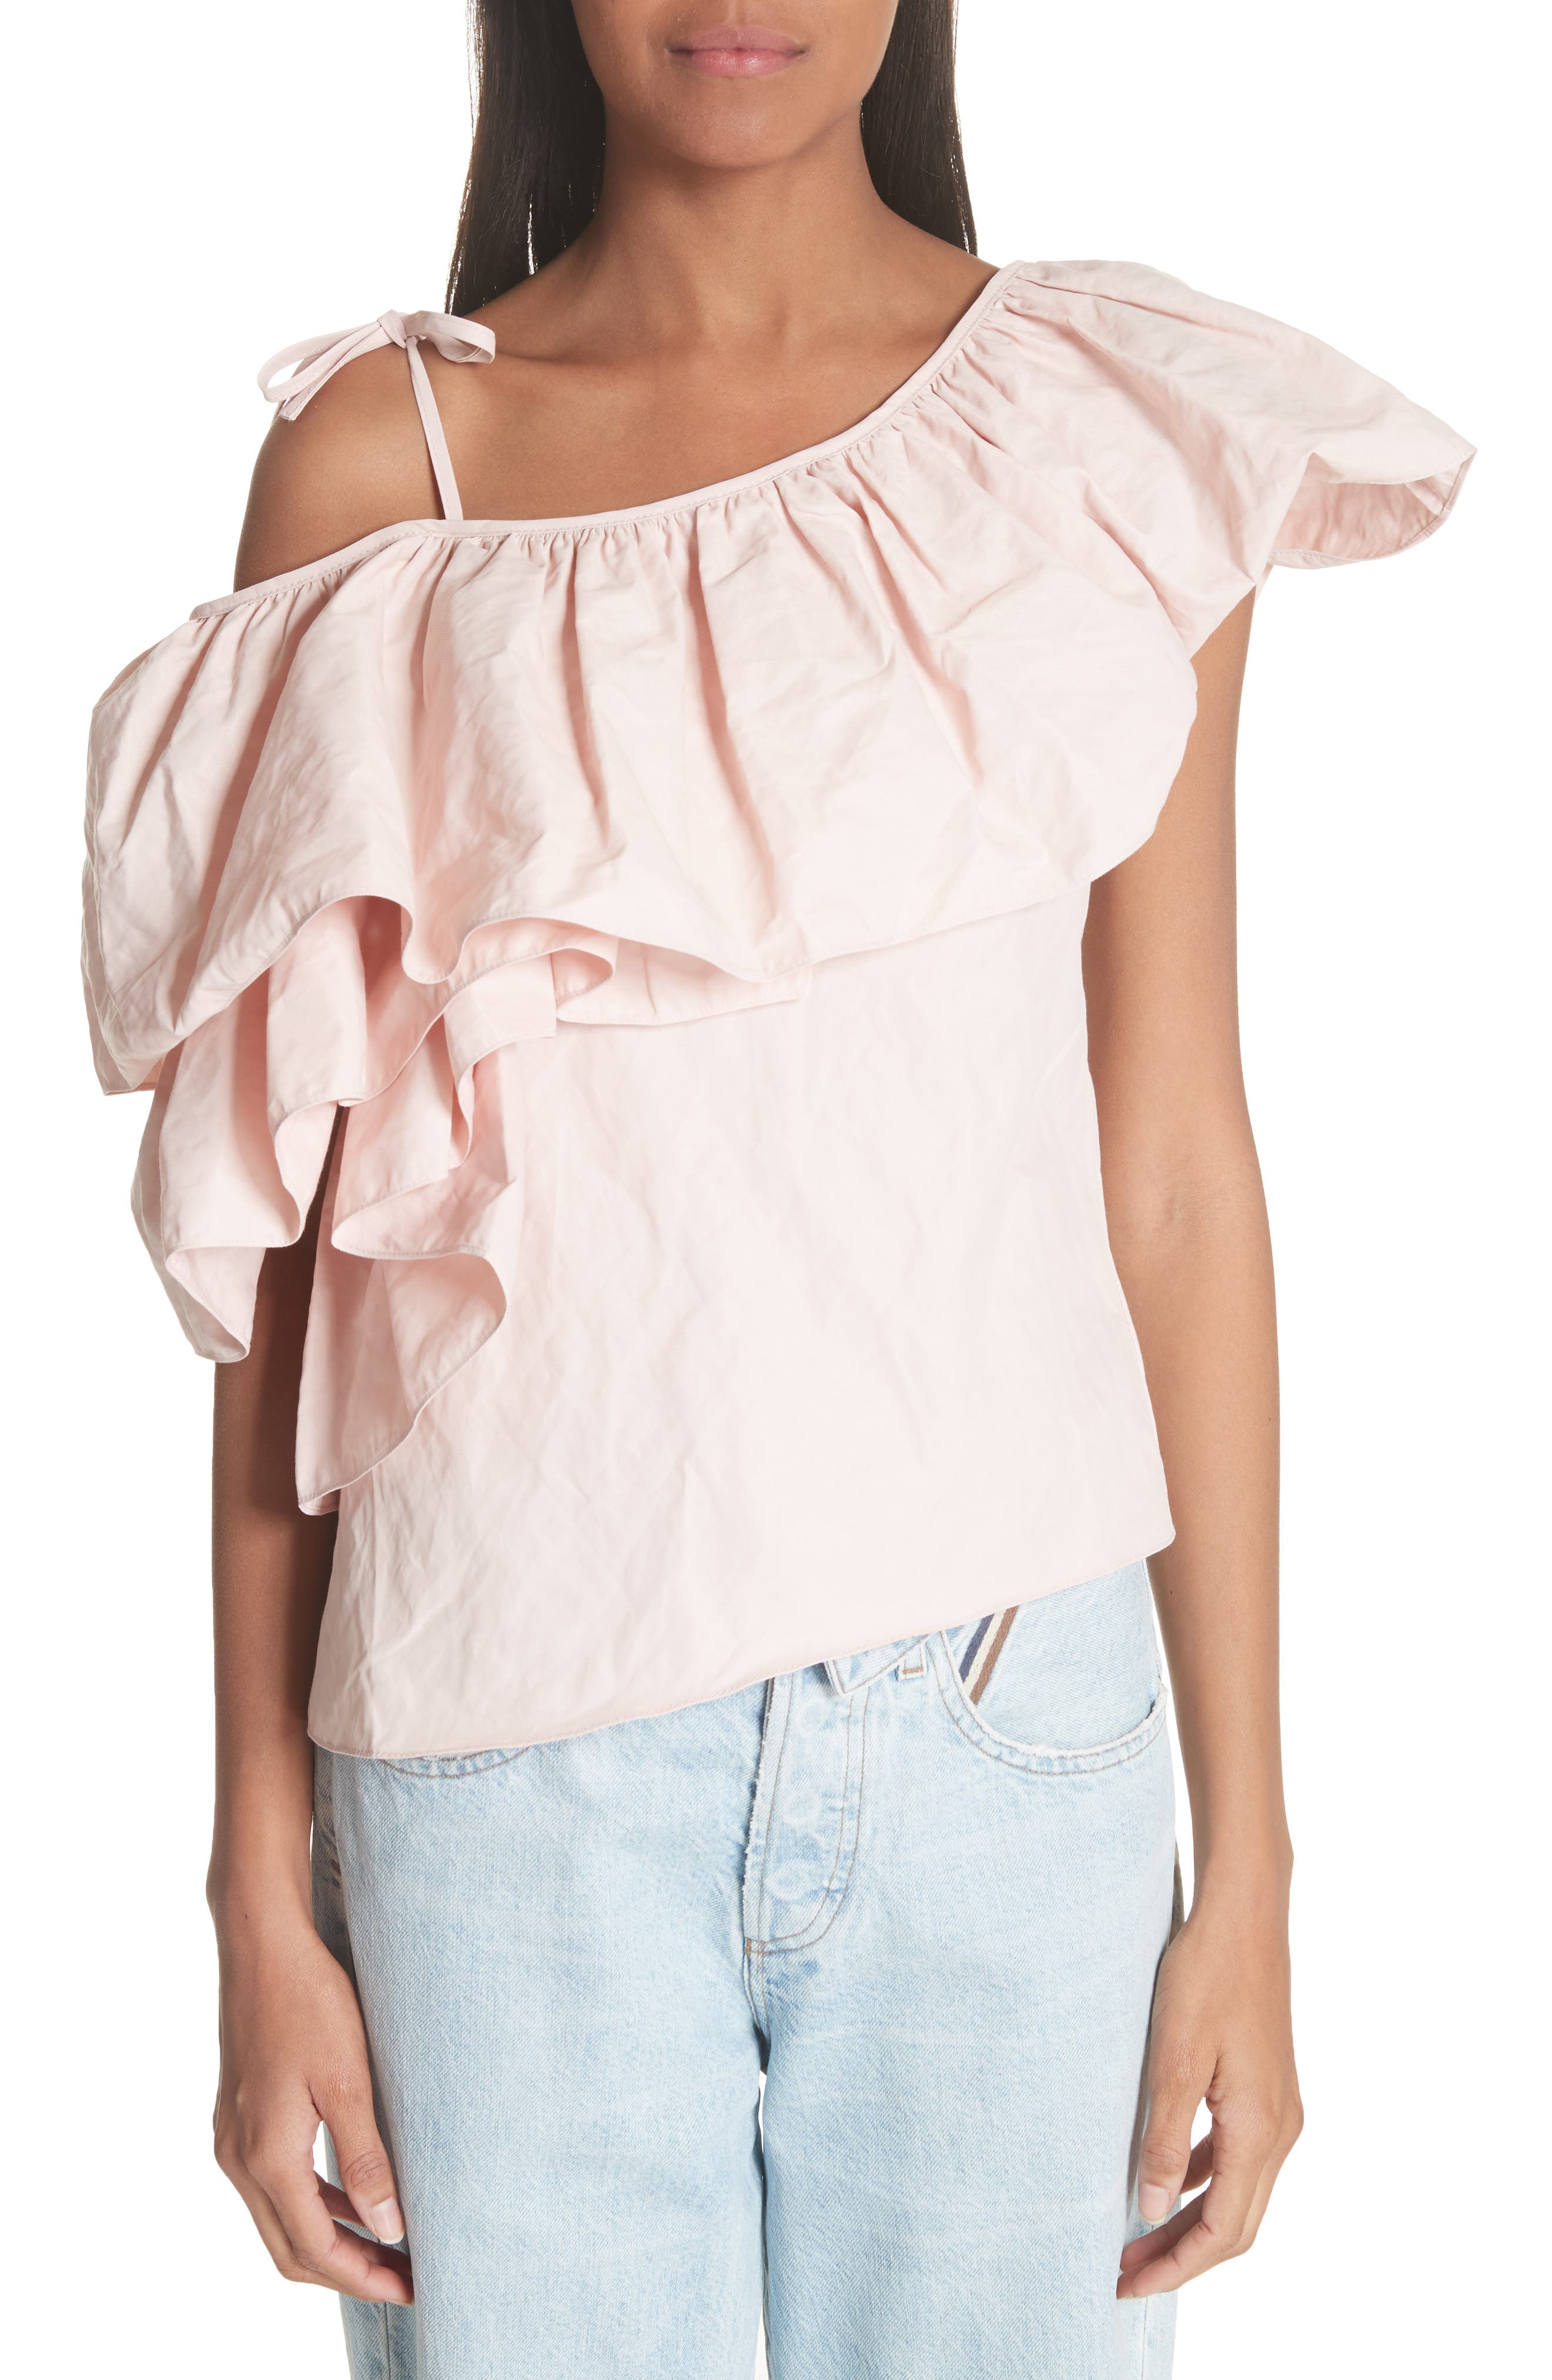 Marques'Almeida One Shoulder Ruffle Top,                         Main,                         color, Pale Pink